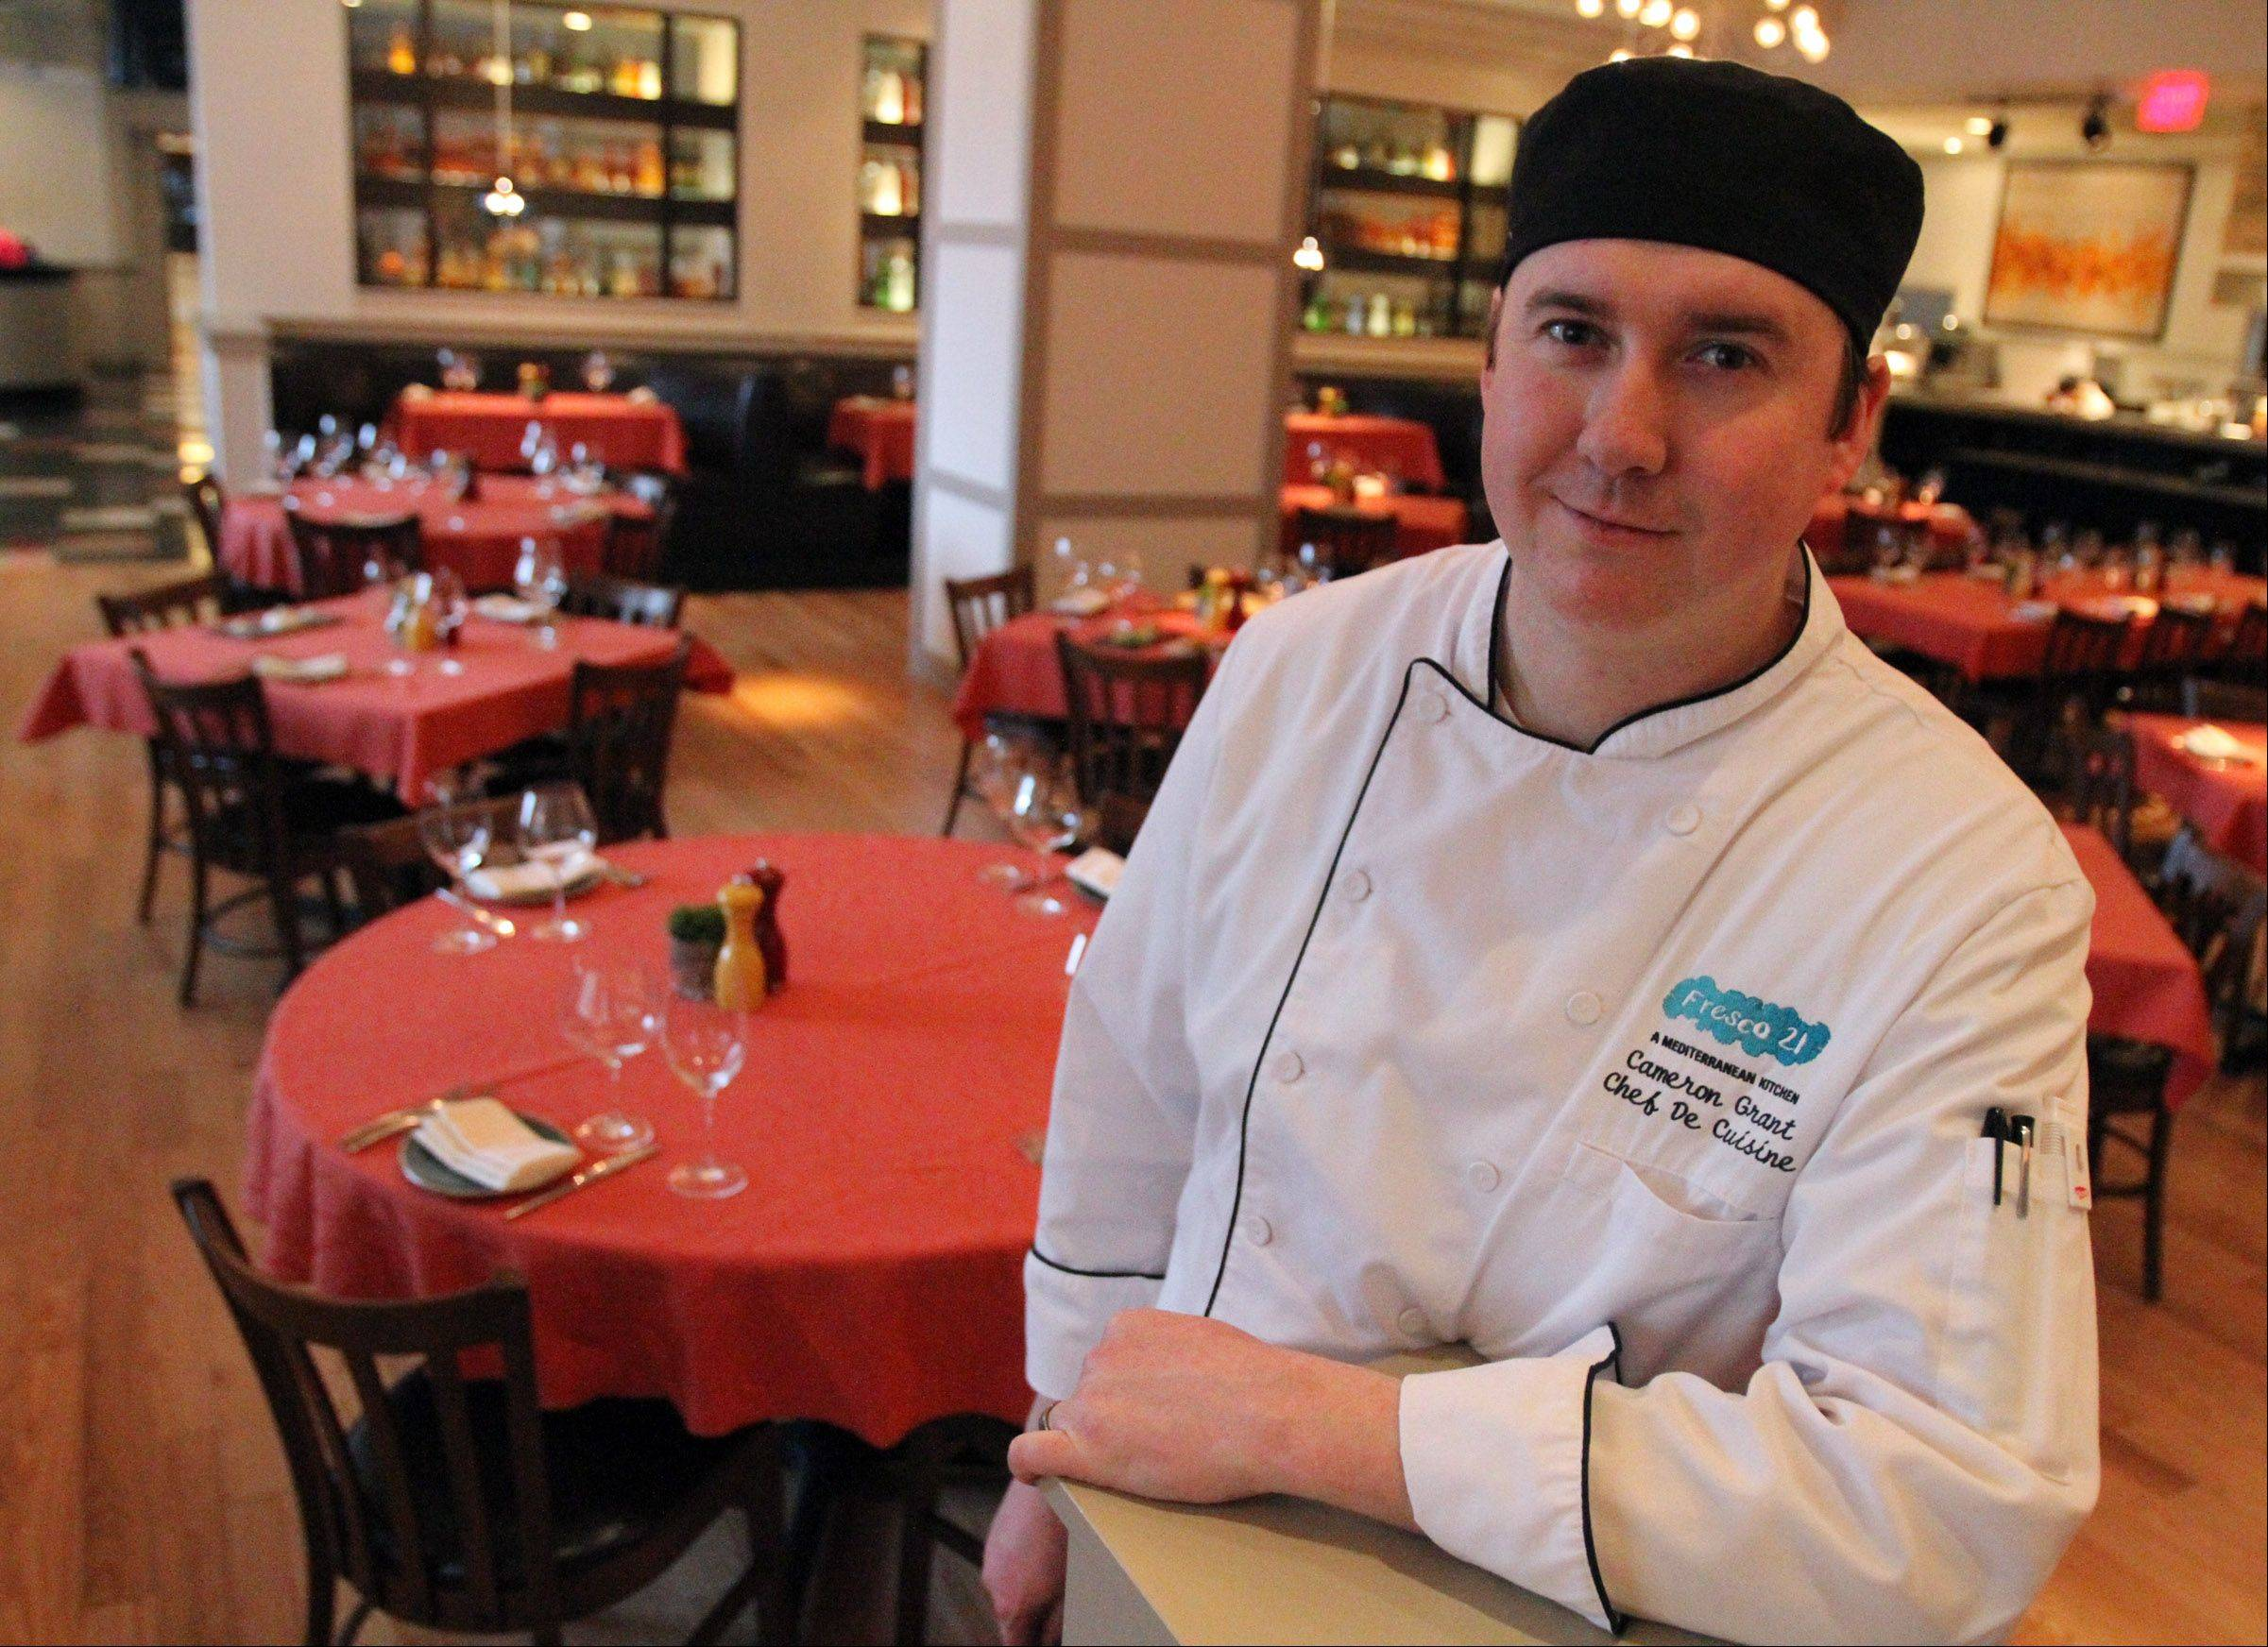 Chef de Cuisine Cameron Grant runs the kitchen at Fresco 21 in Rosemont.